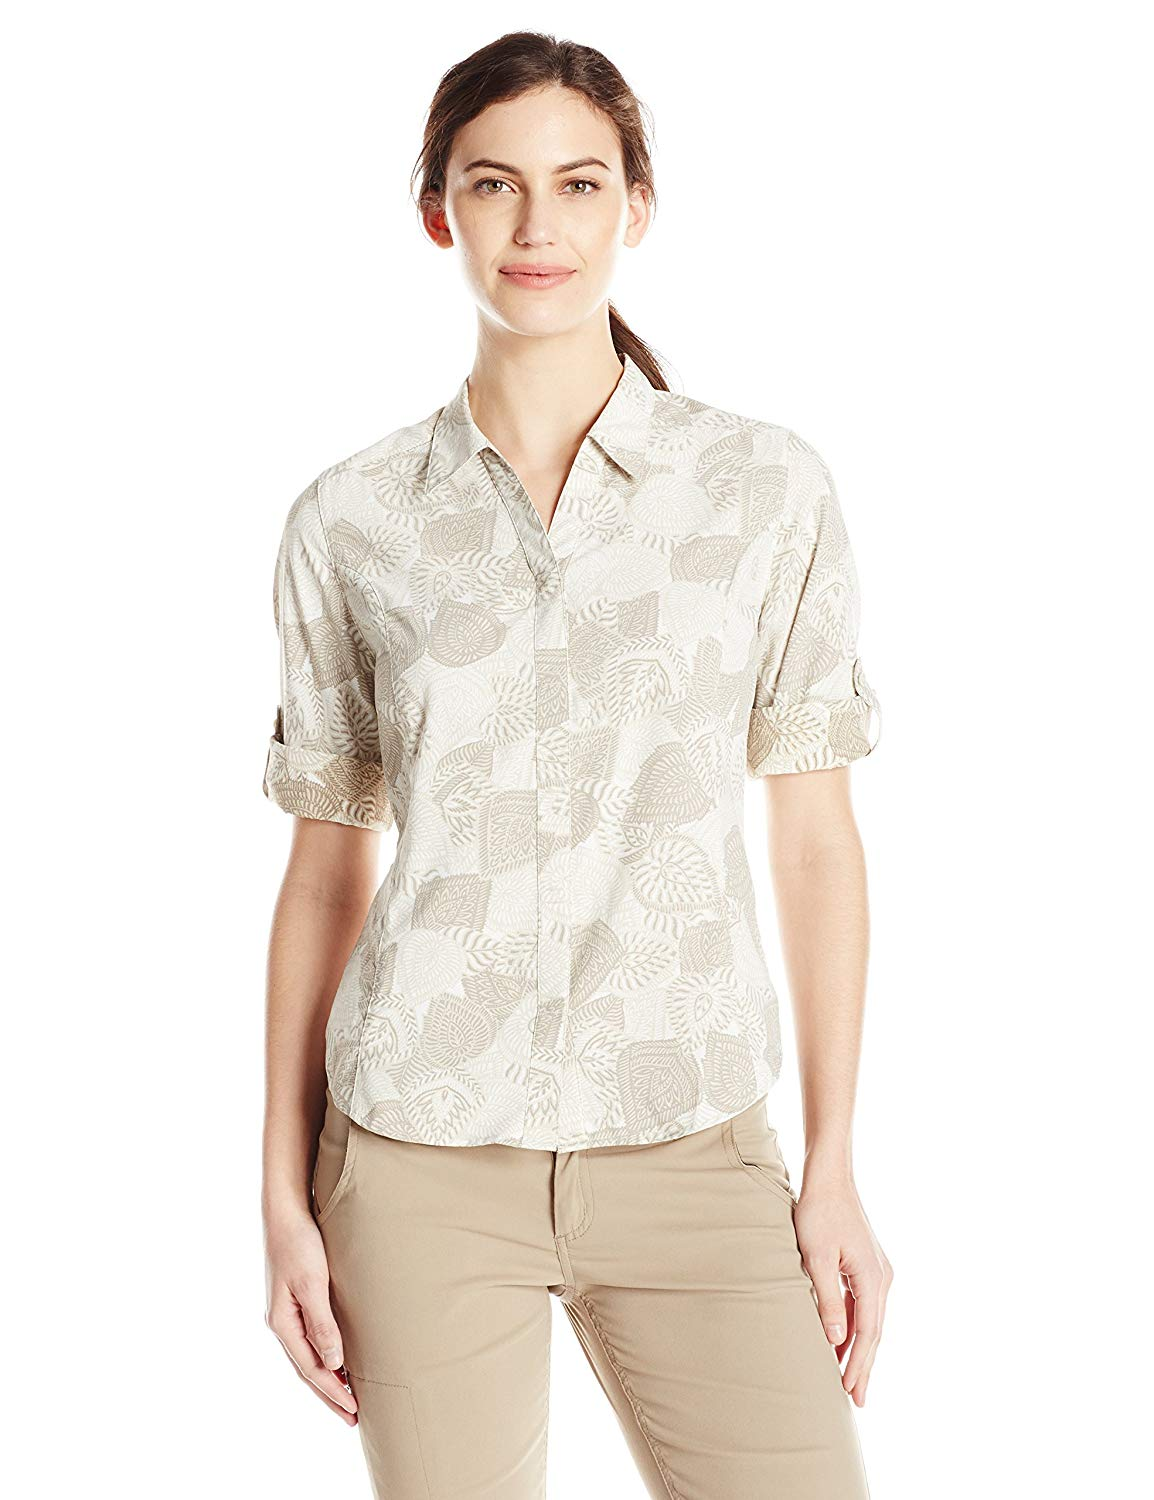 best travel shirts men women quick drying Royal Robbins Women's Expedition Stretch 3/4 Sleeve Print Top